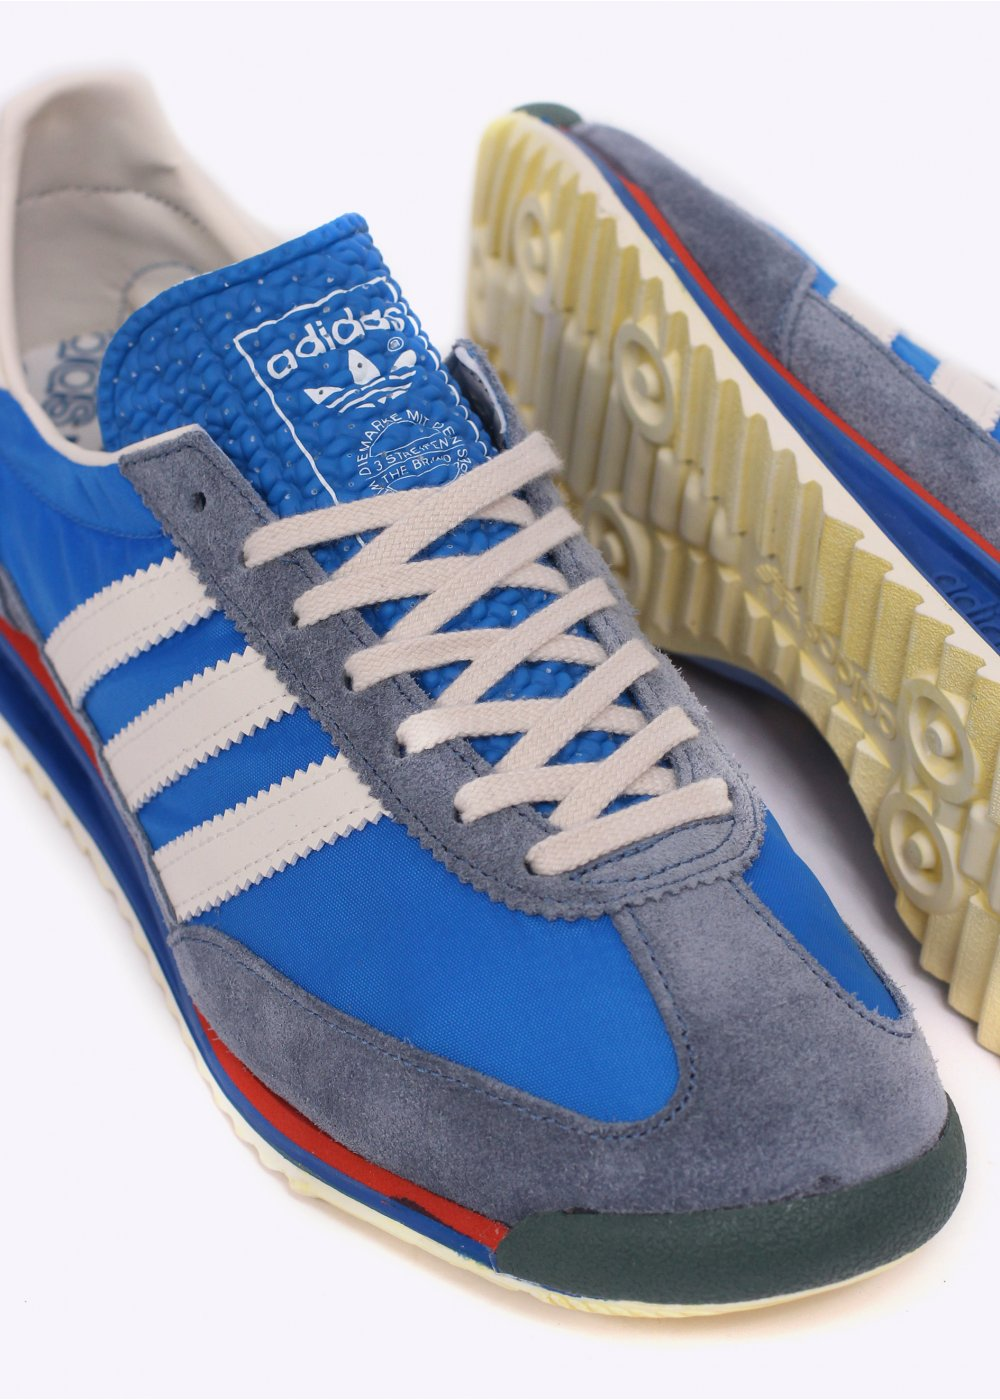 adidas originals sl72 vintage trainers blue. Black Bedroom Furniture Sets. Home Design Ideas